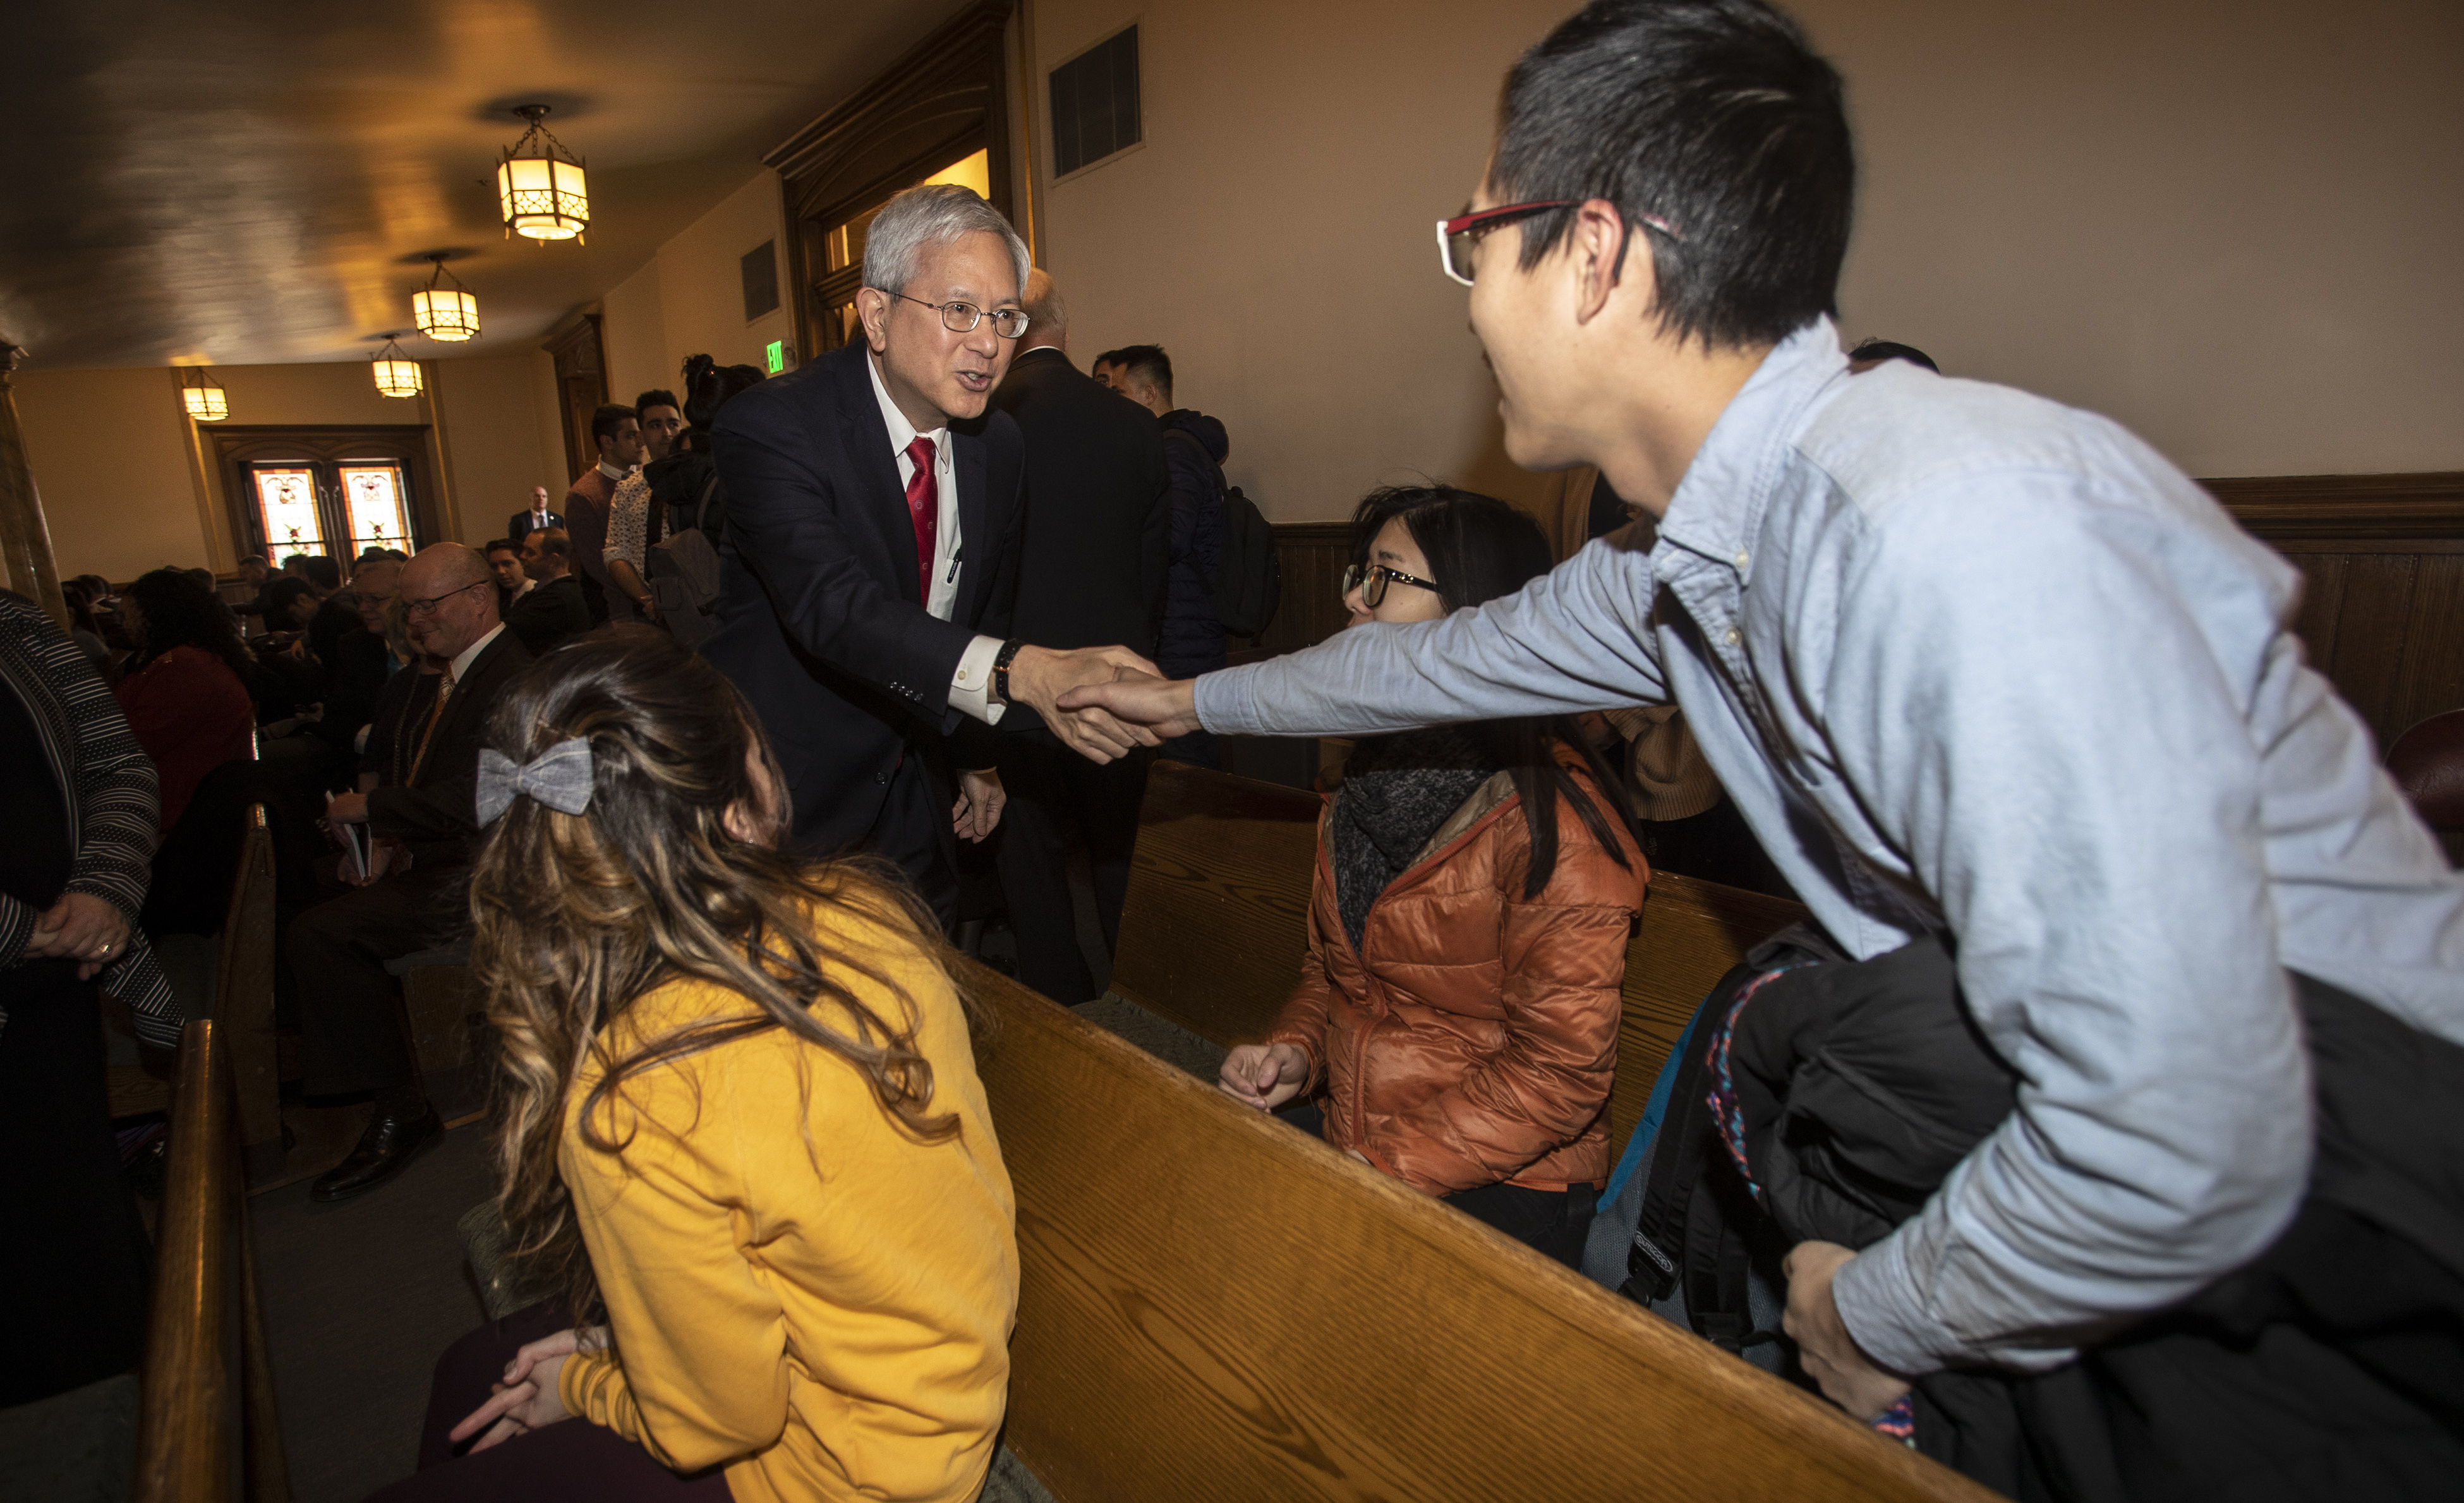 Elder Gerrit W. Gong of the Quorum of the Twelve Apostles of The Church of Jesus Christ of Latter-day Saints greets students and staff from LDS Business College in the Assembly Hall on Temple Square in Salt Lake City on Tuesday, Feb. 26, 2019.